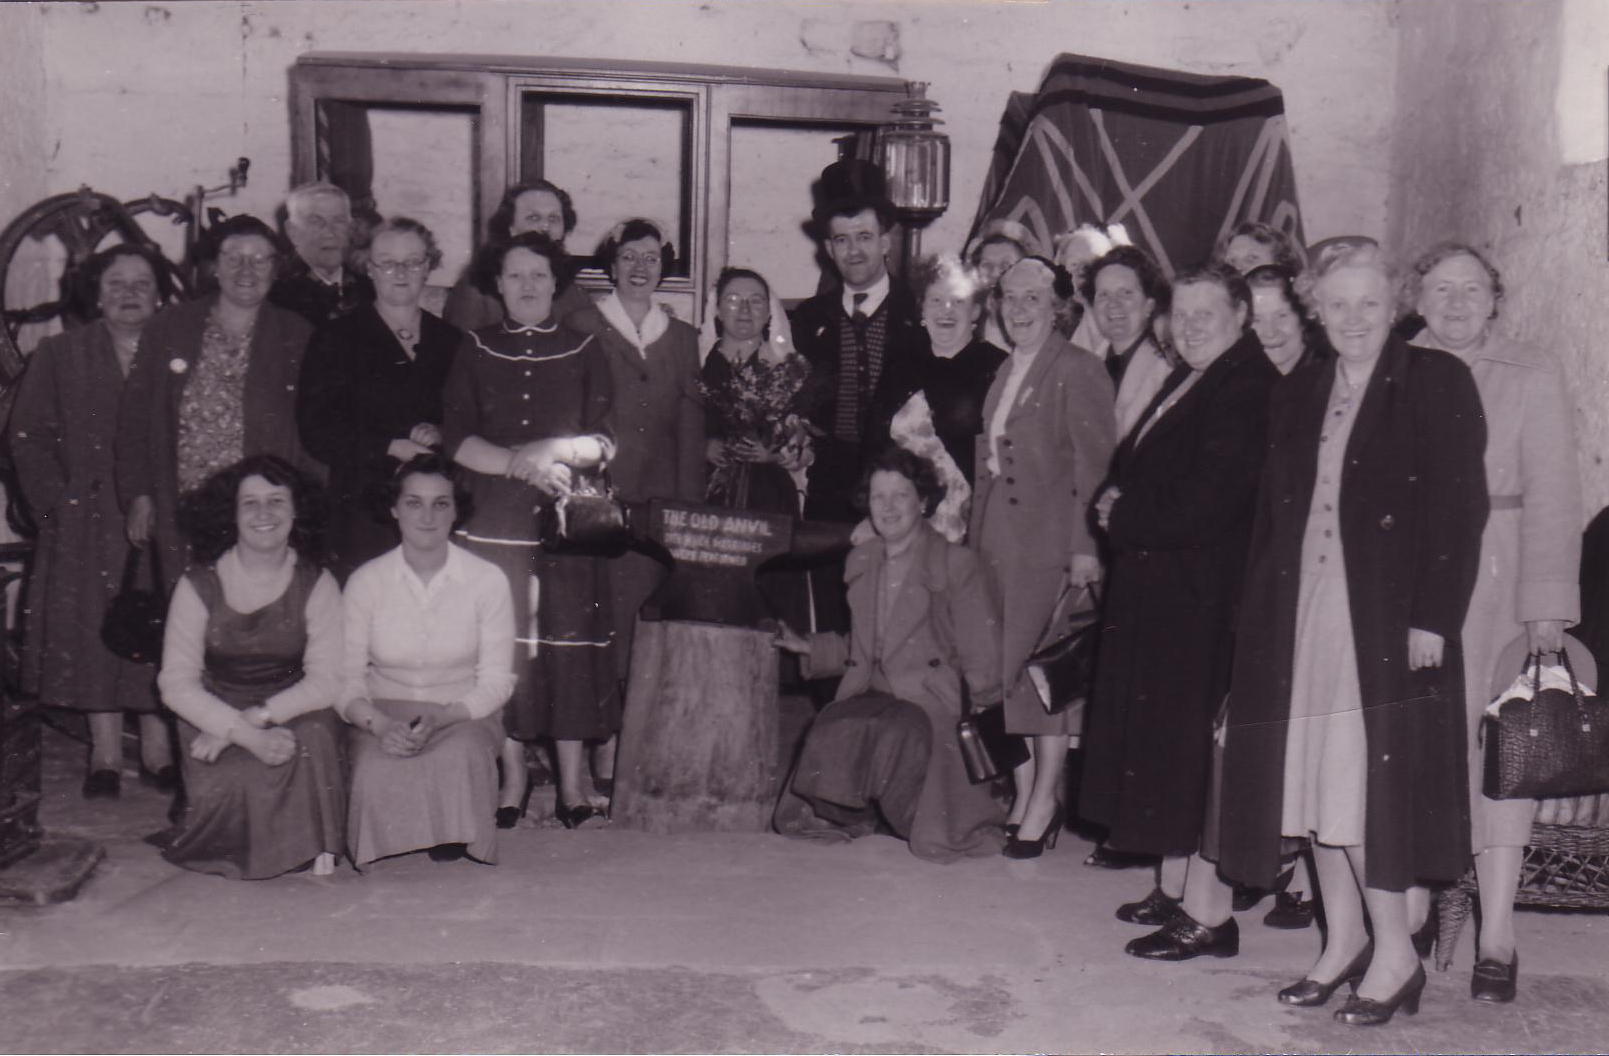 A Marriage (?) 'Over The Anvil' At Gretna Green 1940s